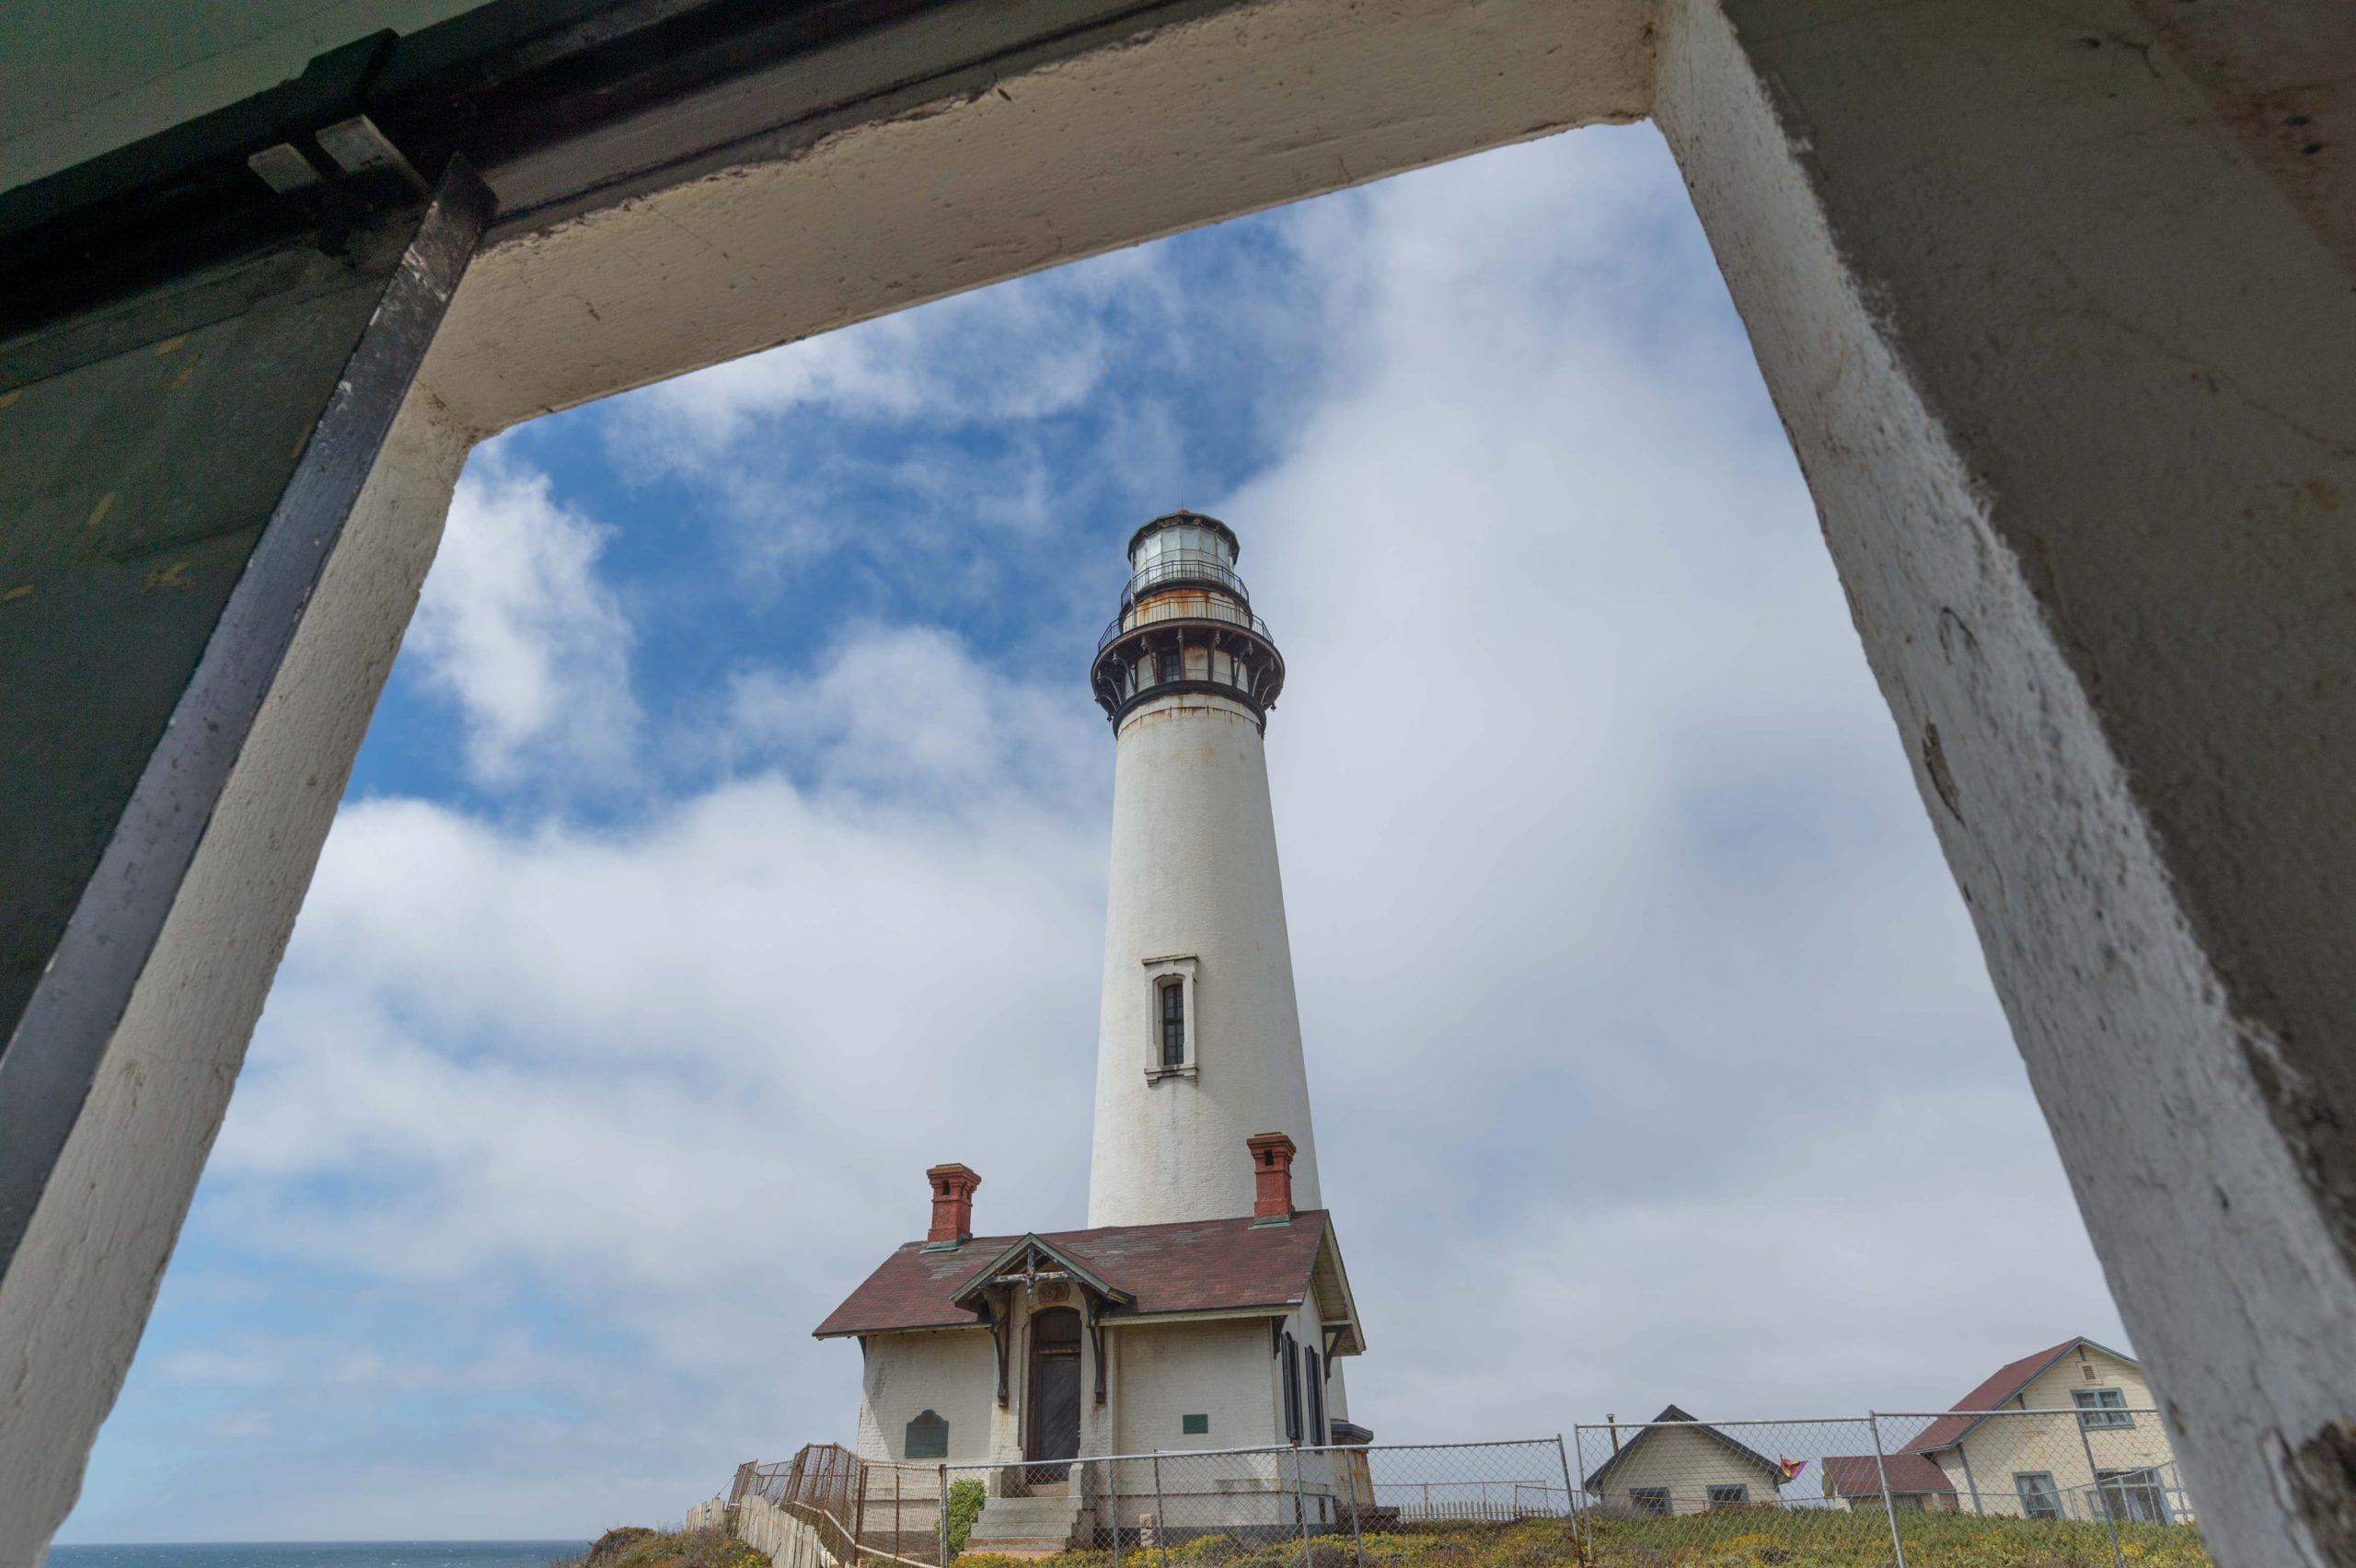 Good ol' Pigeon Point light house south of the Bay Area. Photo by Steve Hymon.